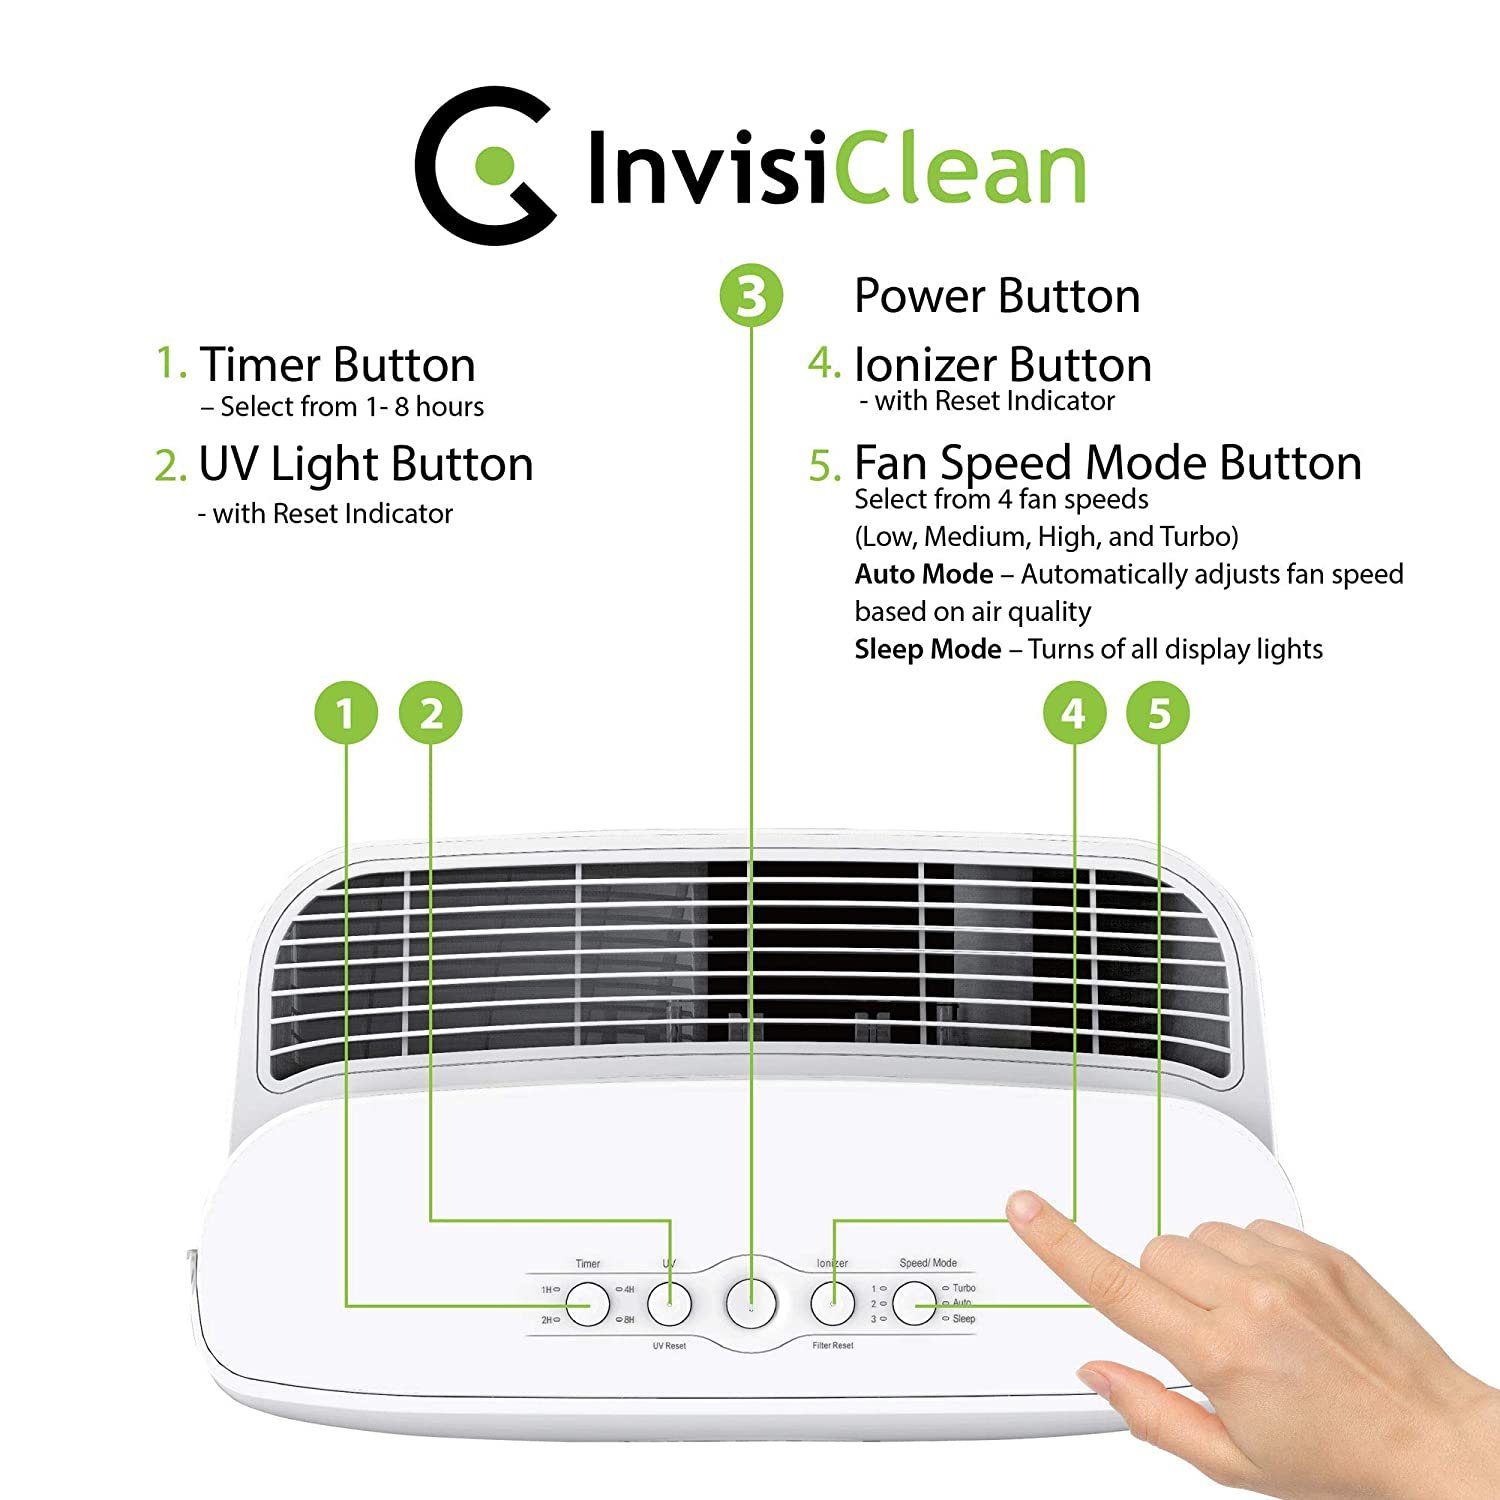 invisiclean claro review